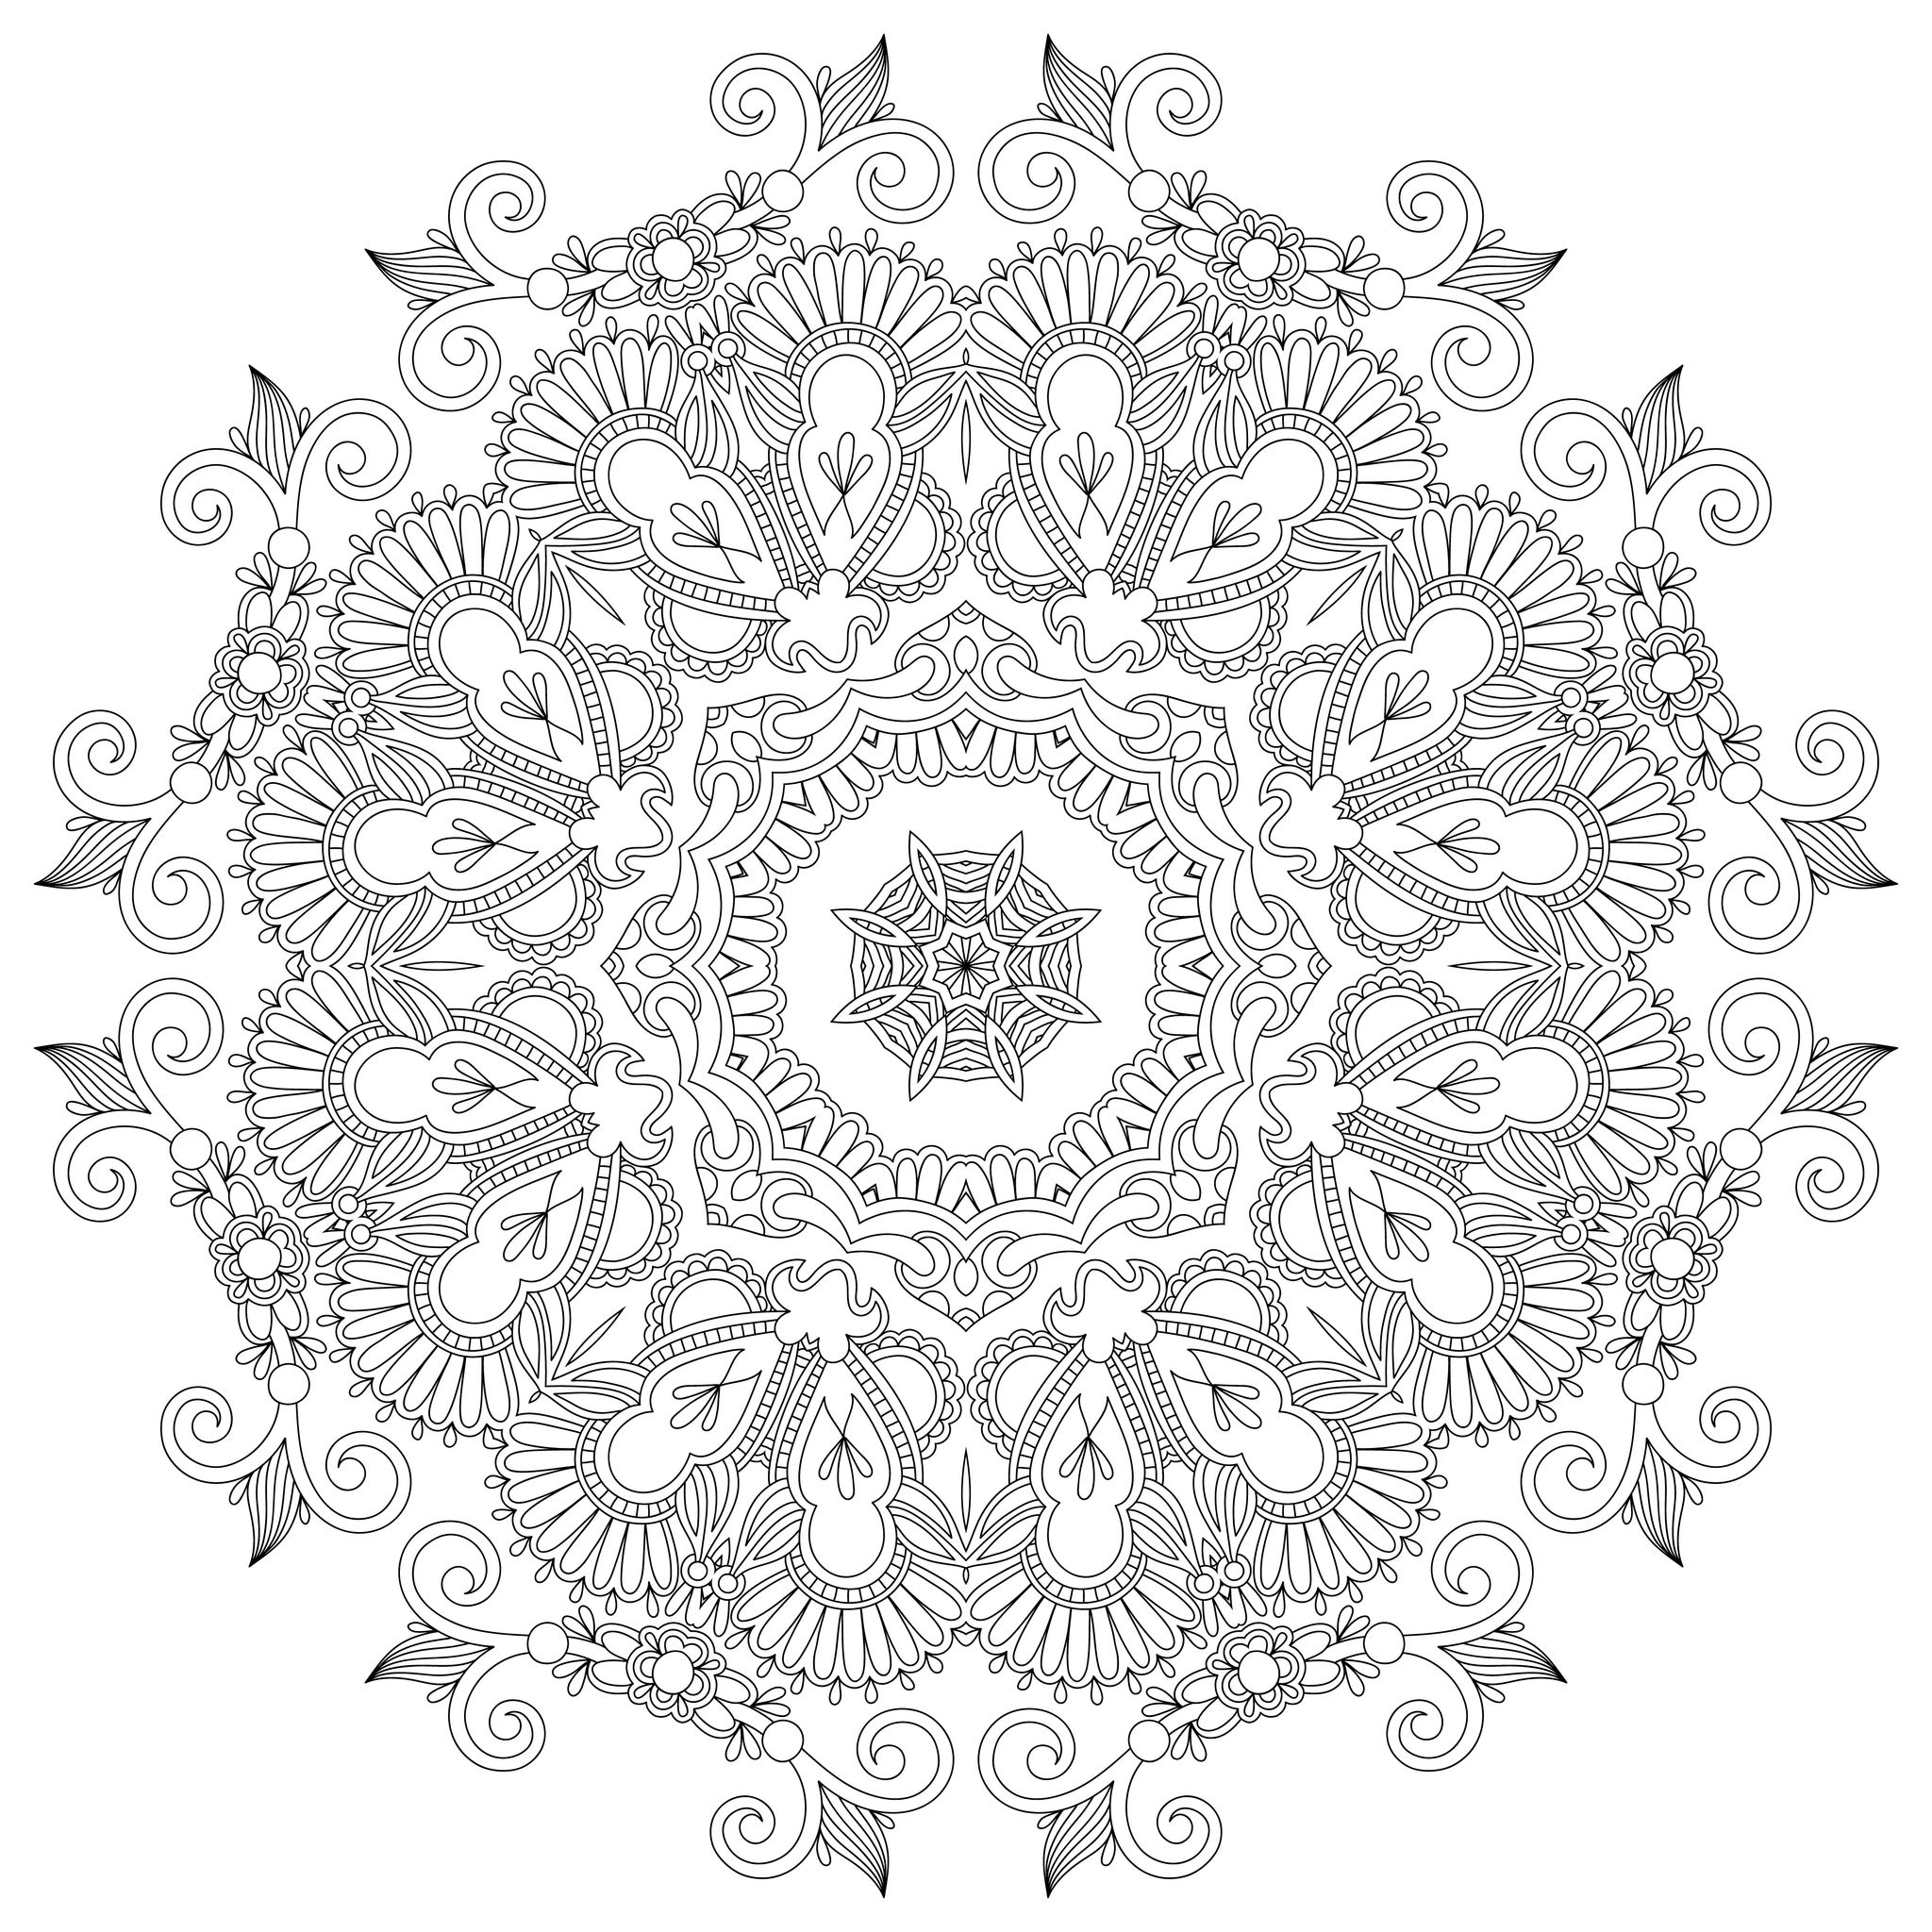 Coloring pages on pinterest free coloring pages mandalas and anti stress - Colorier mandala ...